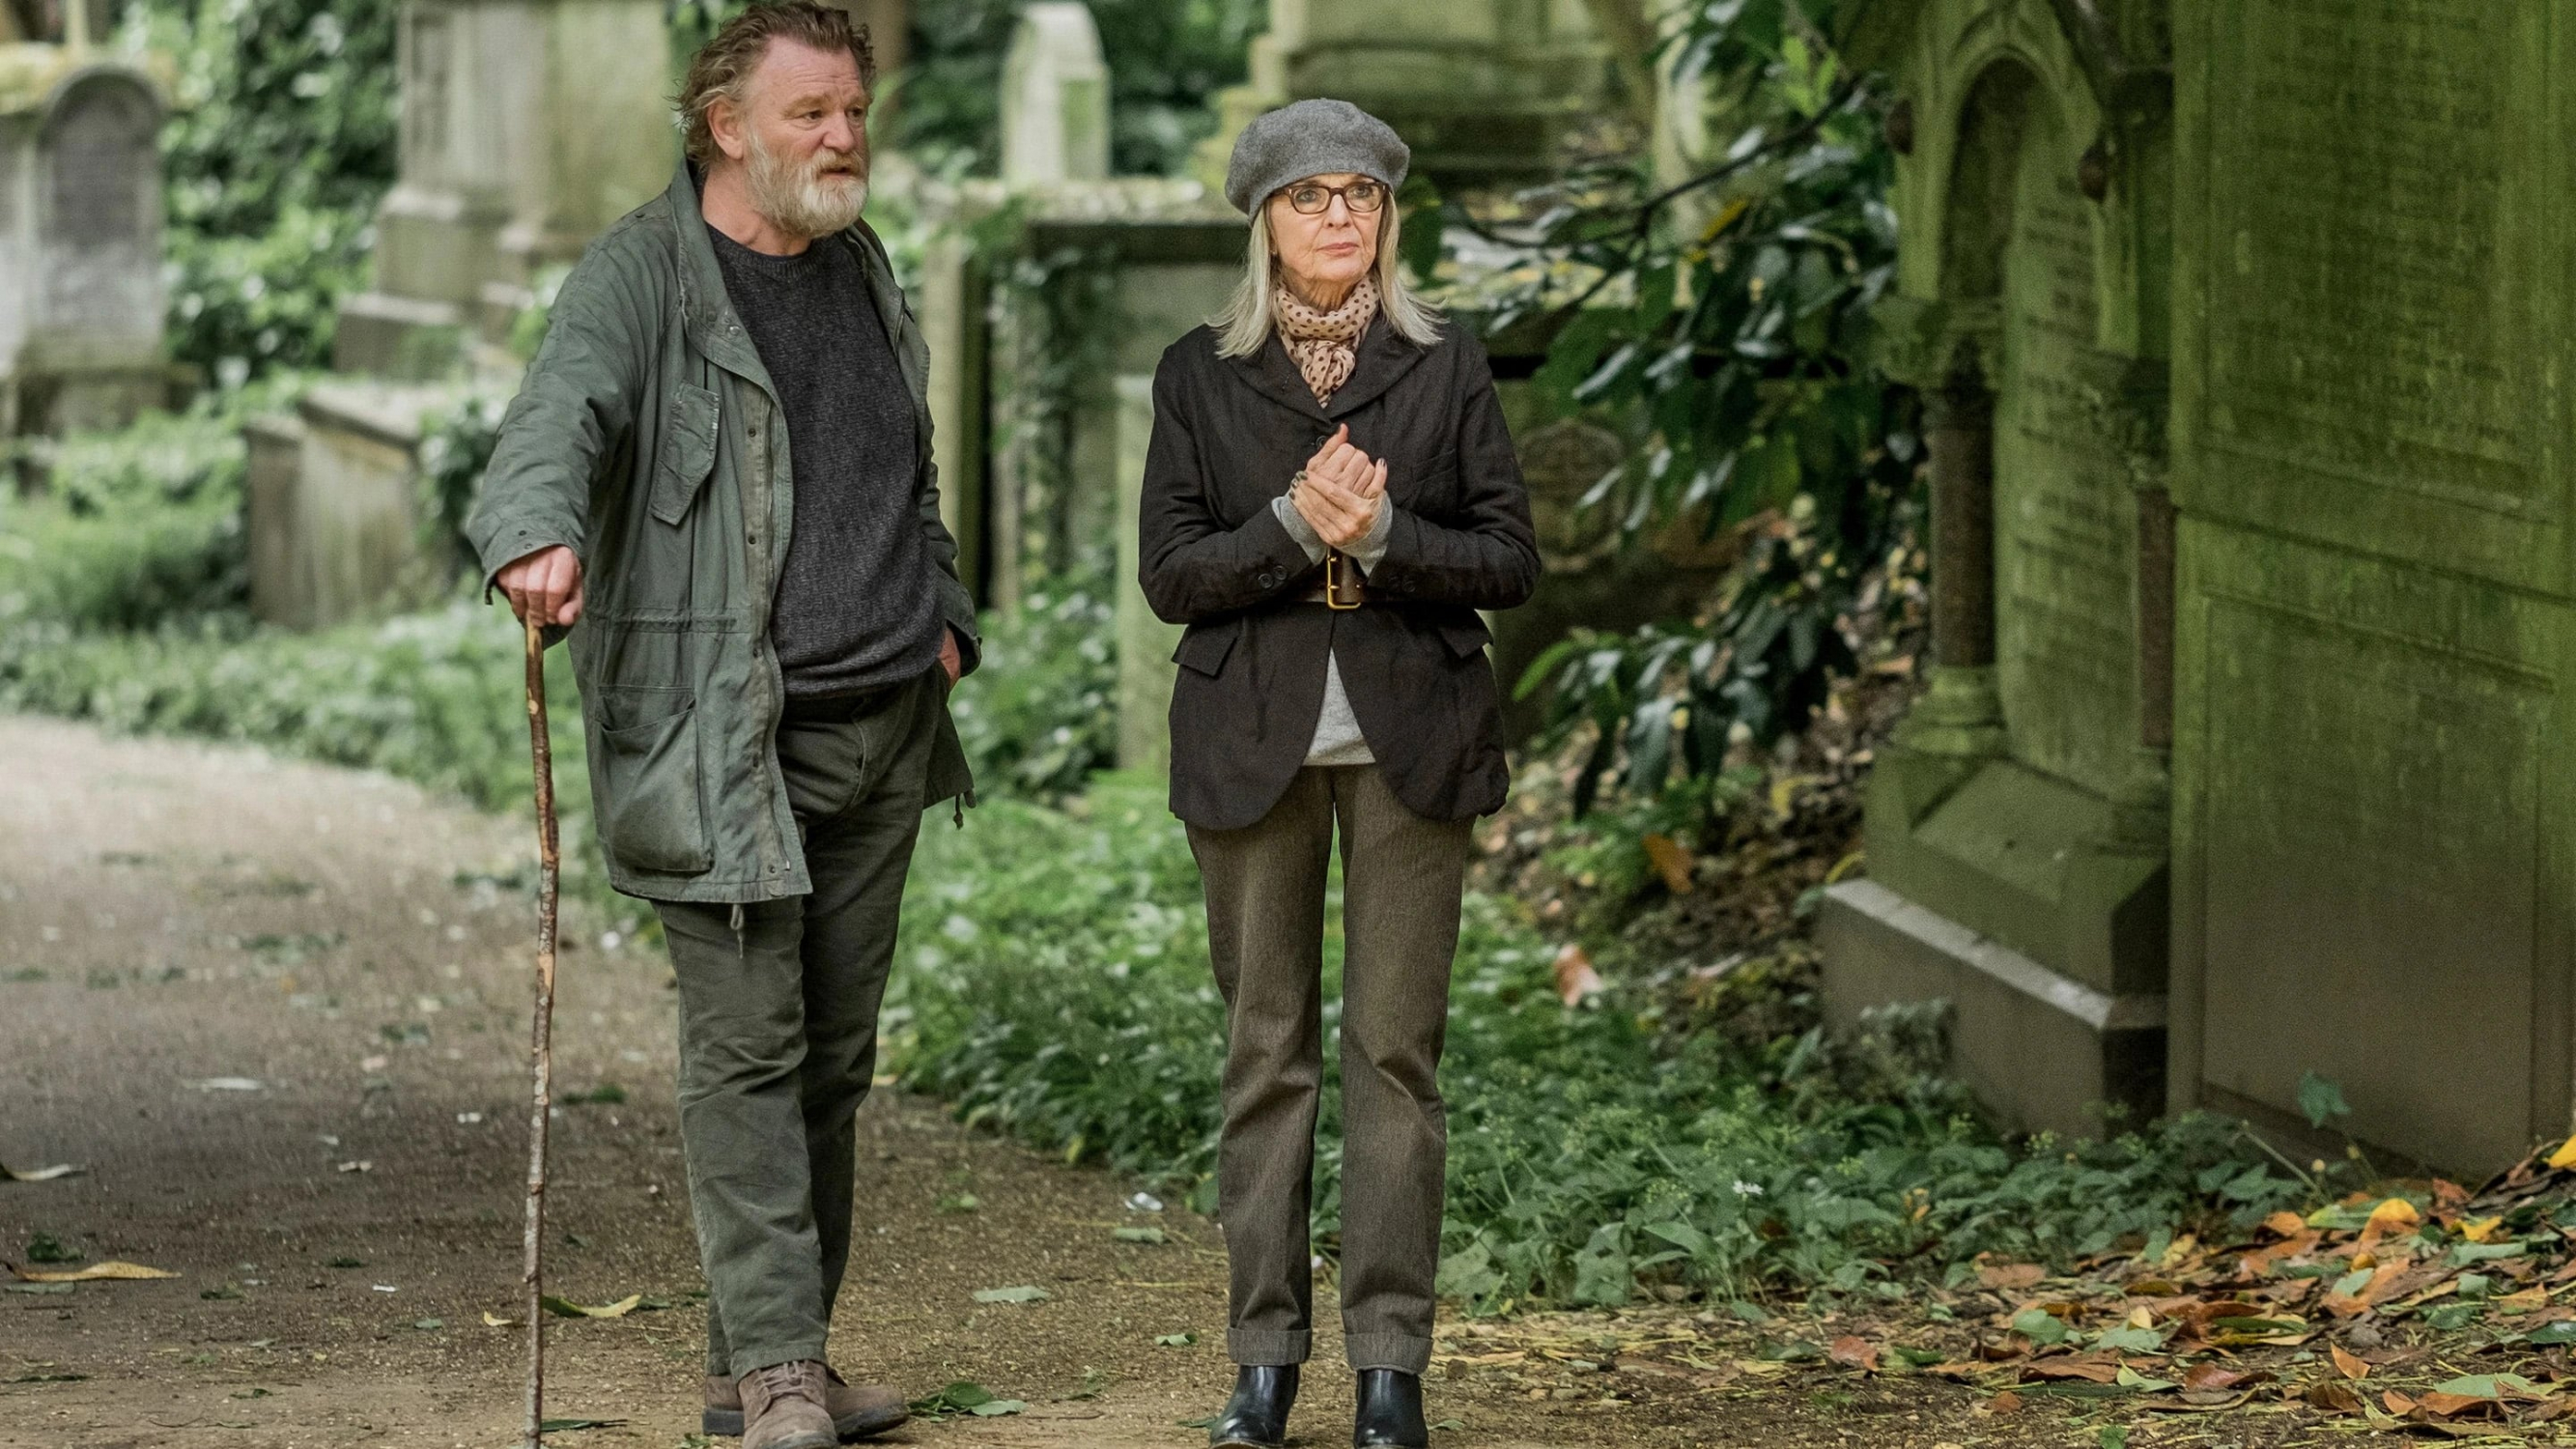 Hampstead - Movie info and showtimes in Trinidad and Tobago - ID 2456